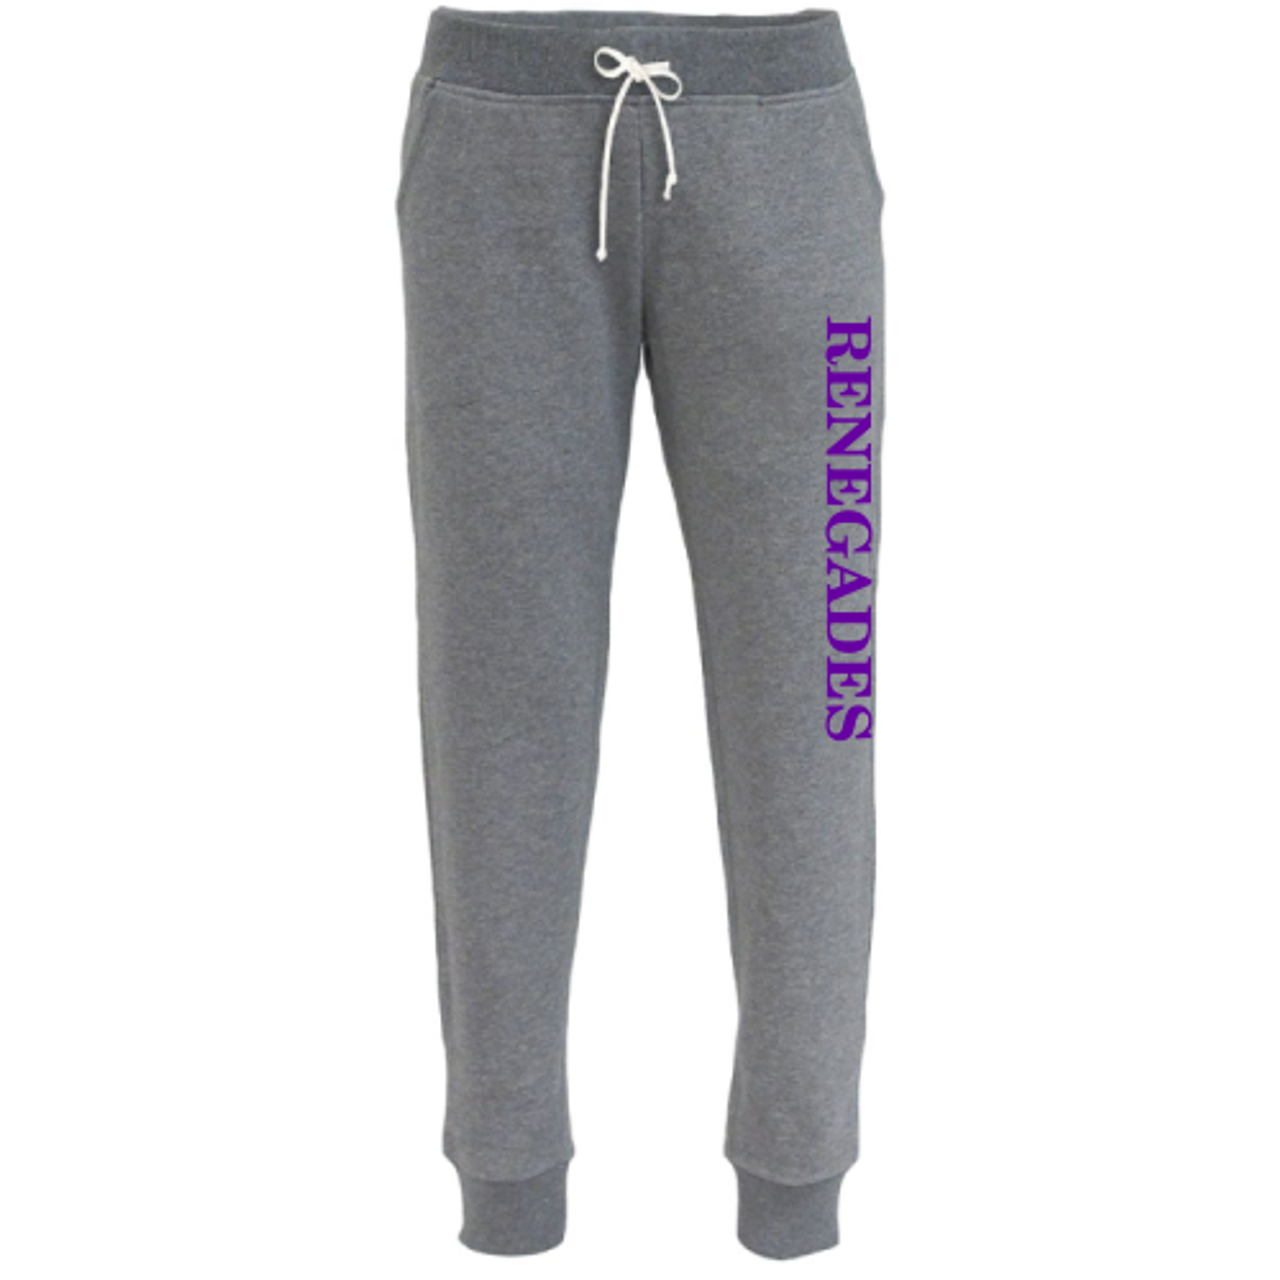 Rochester Renegades Joggers